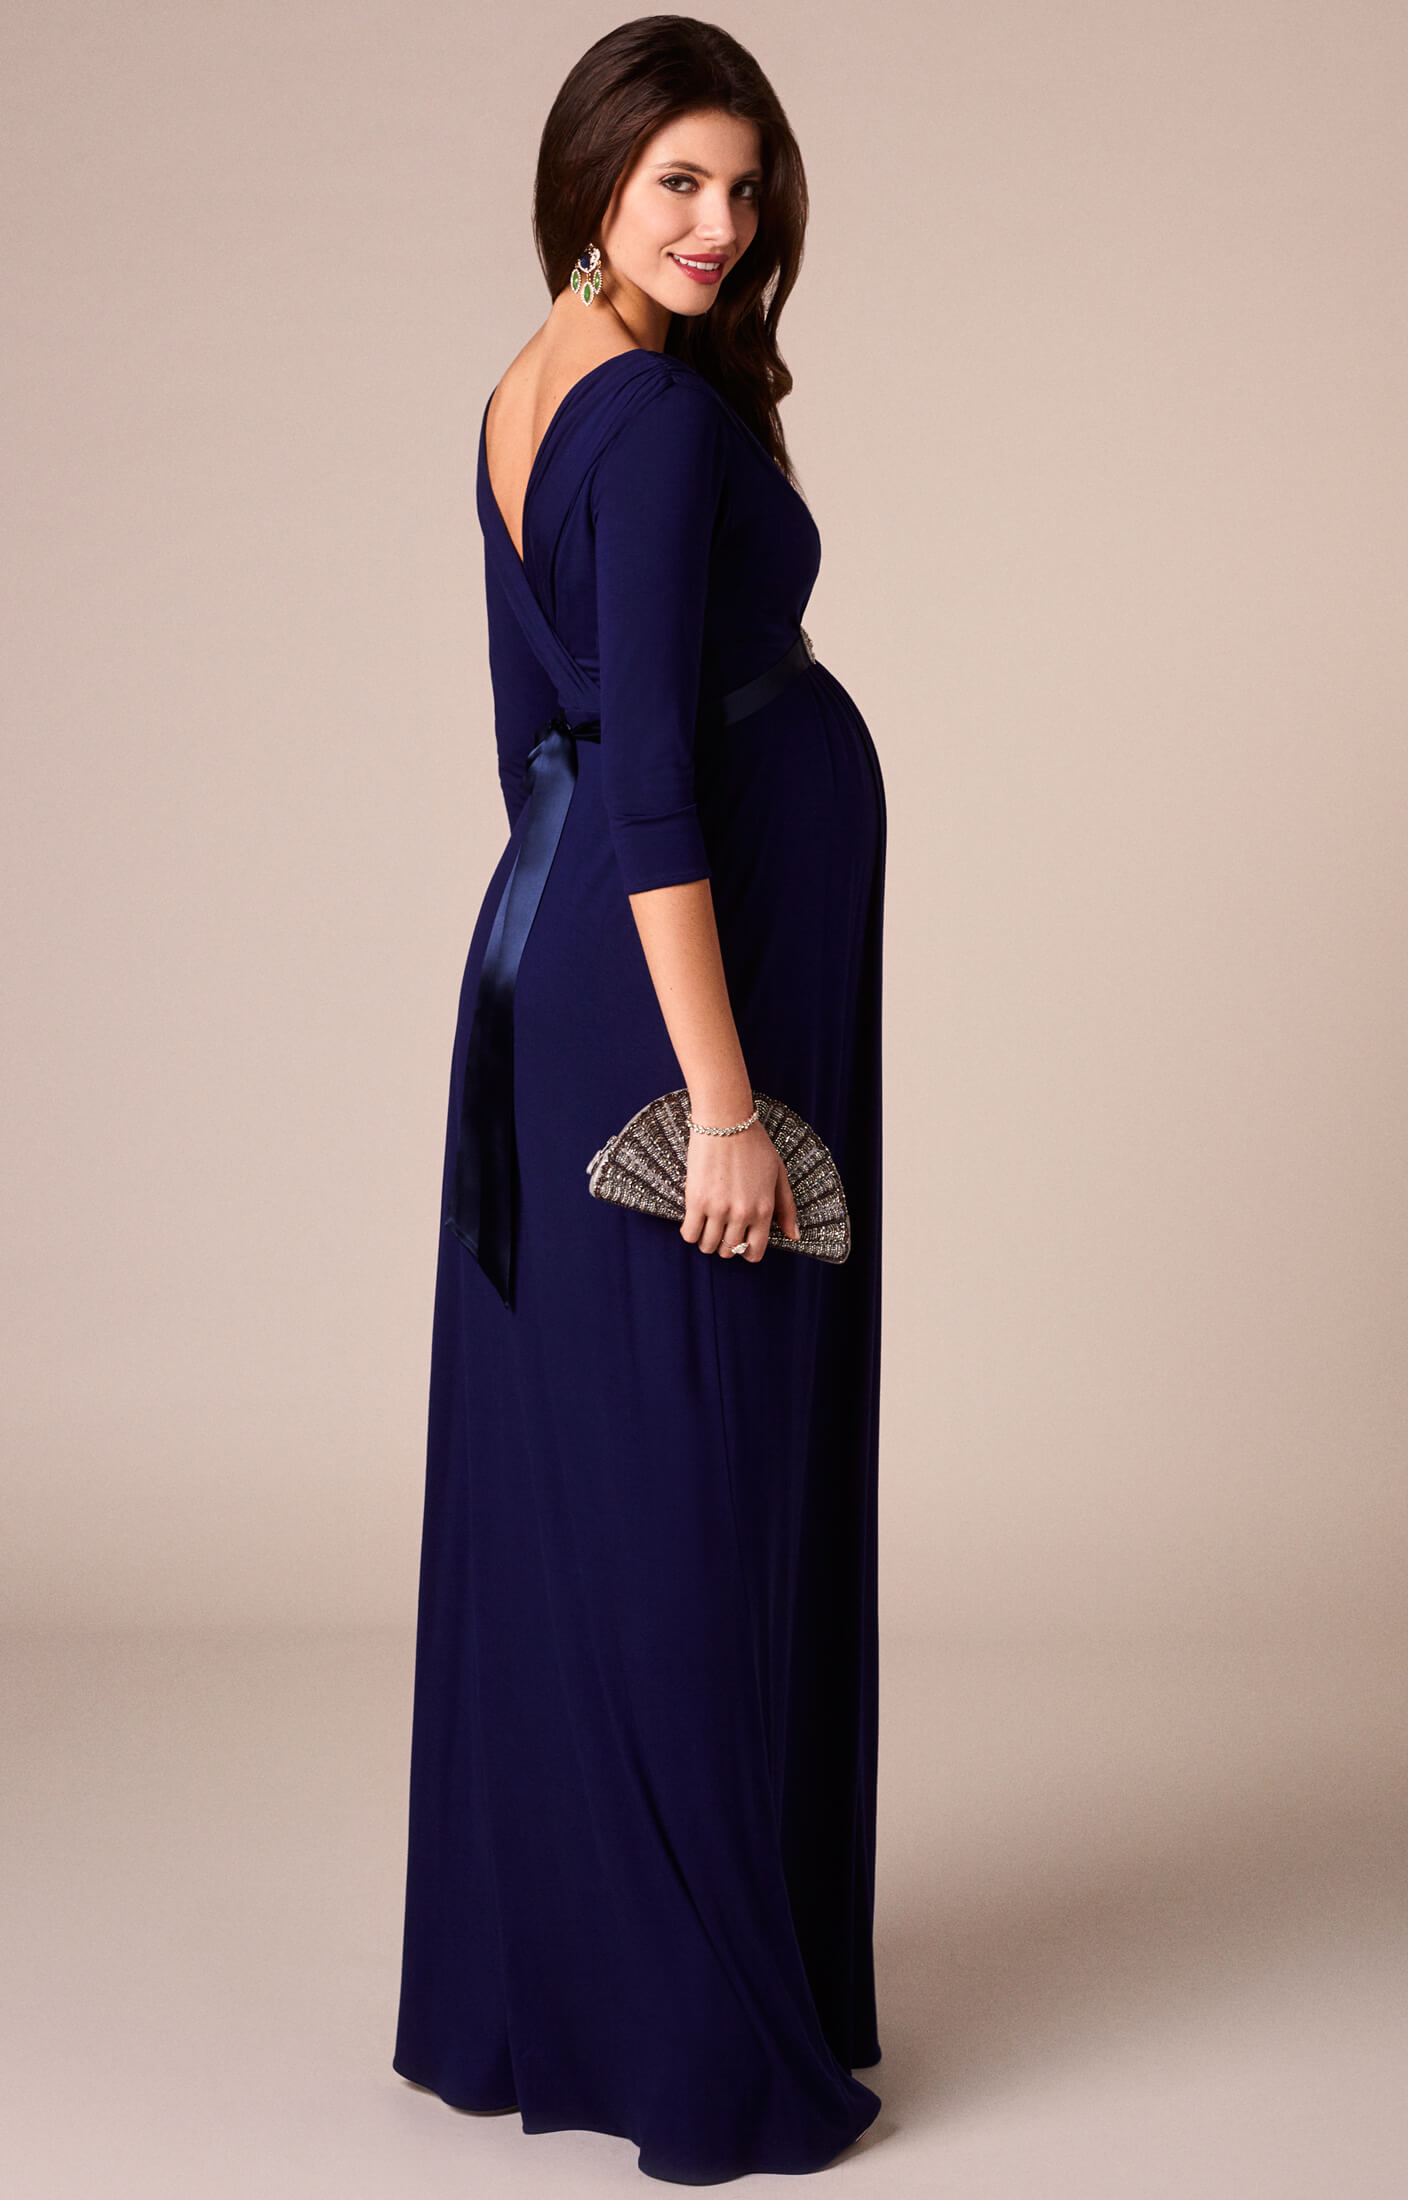 Willow Maternity Gown Long Eclipse Blue Maternity